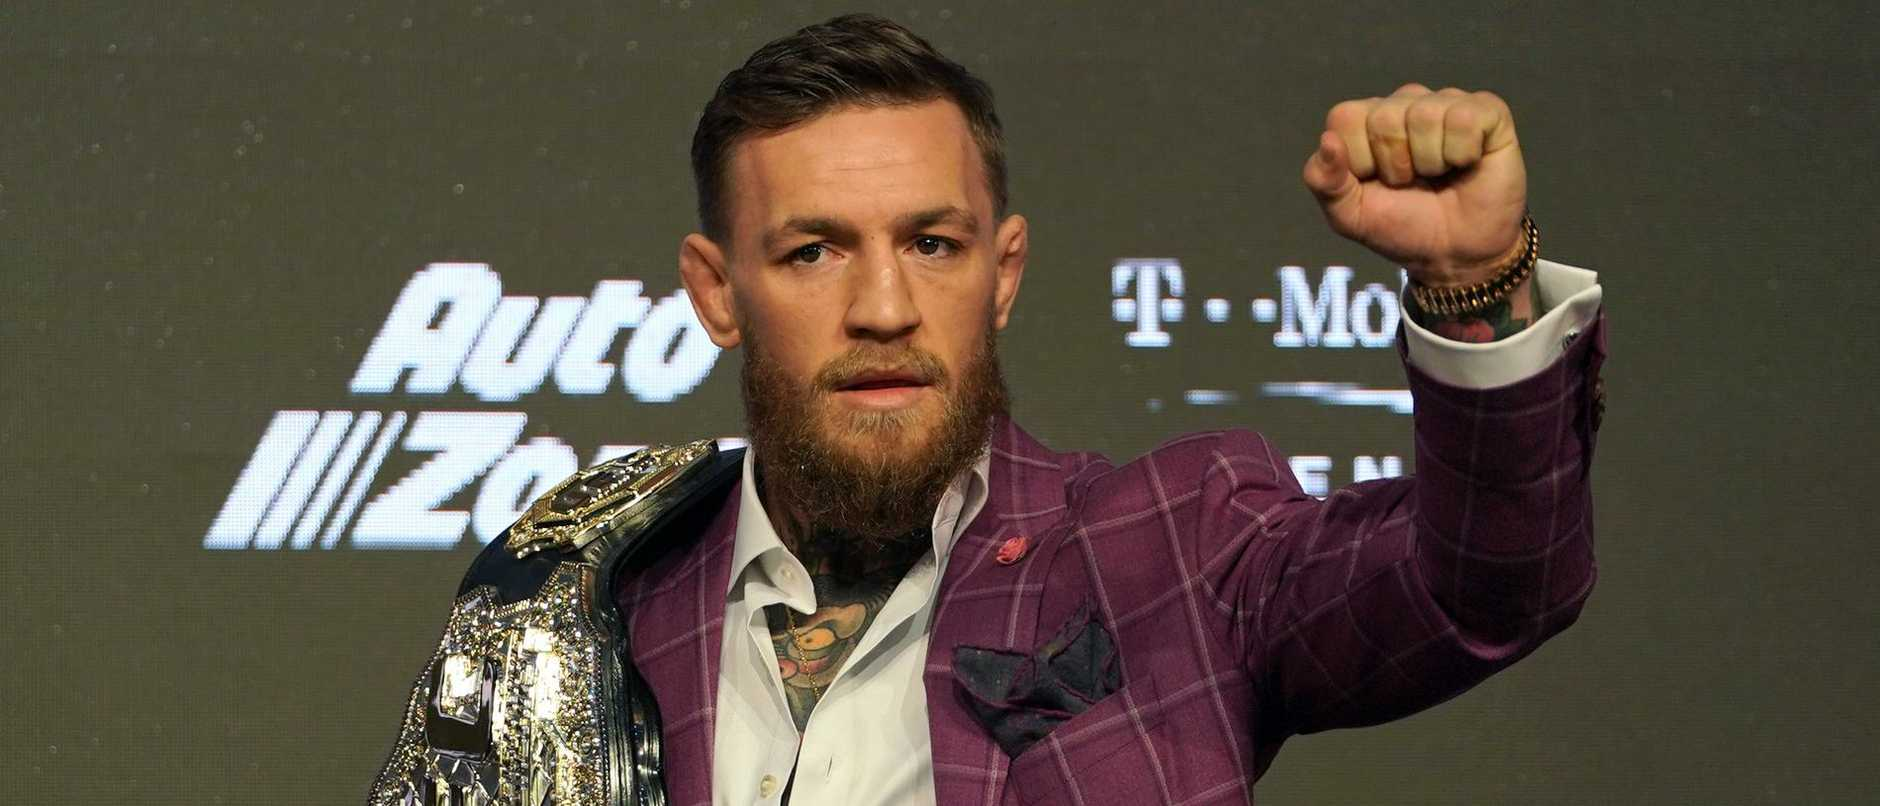 Conor McGregor addresses allegations in scary Instagram posts